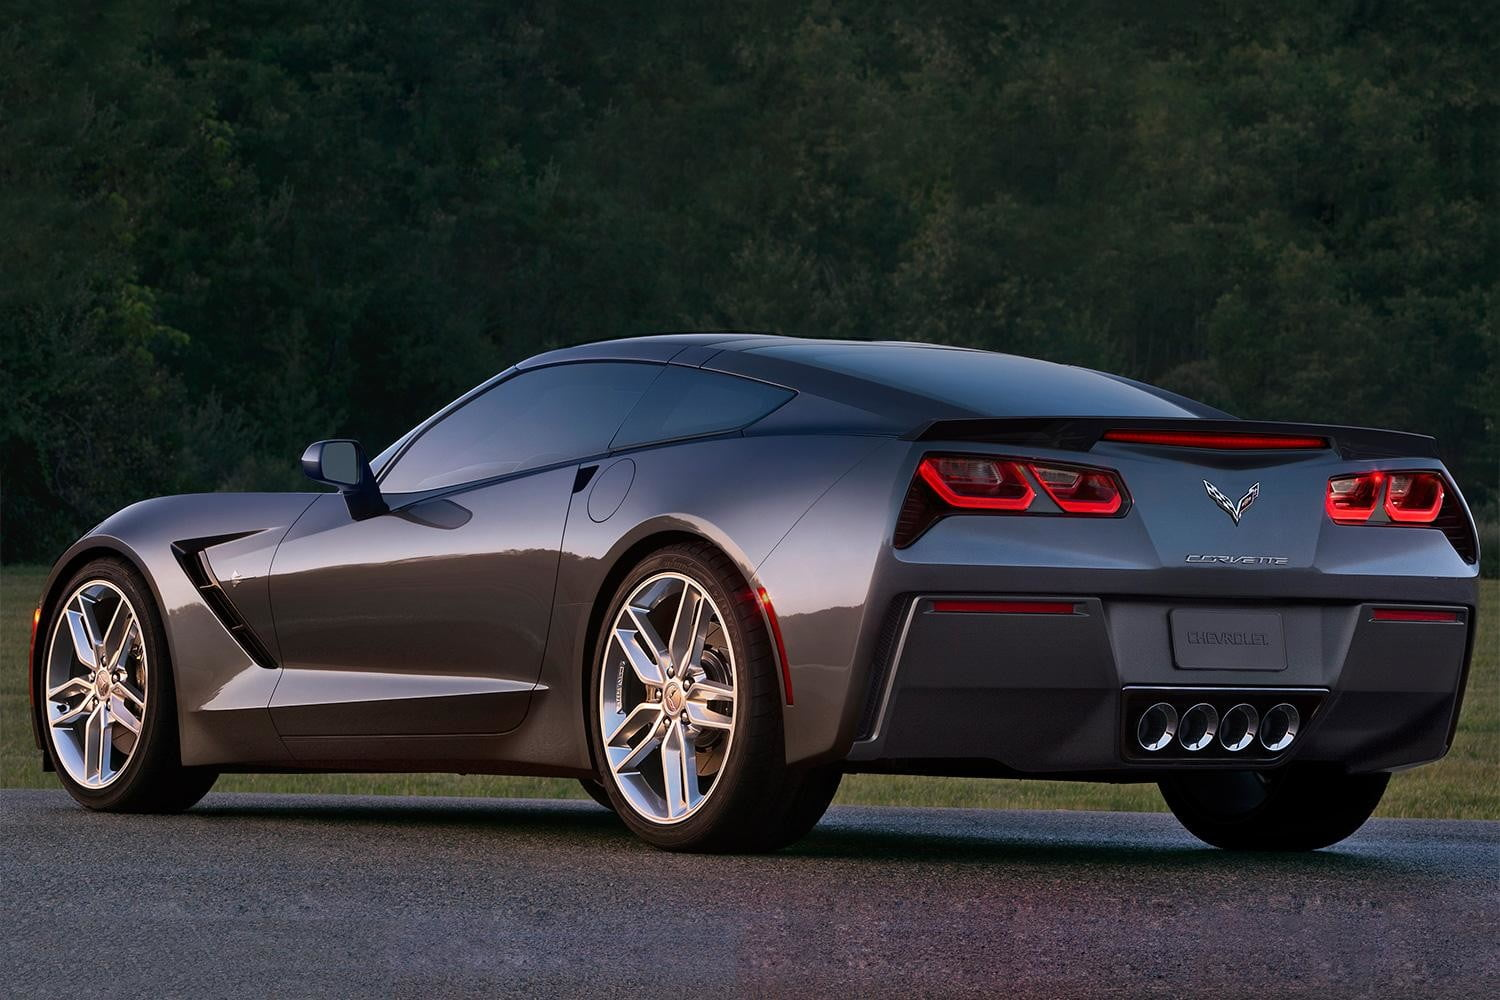 2014 Corvette Stingray exterior charcoal rear left angle